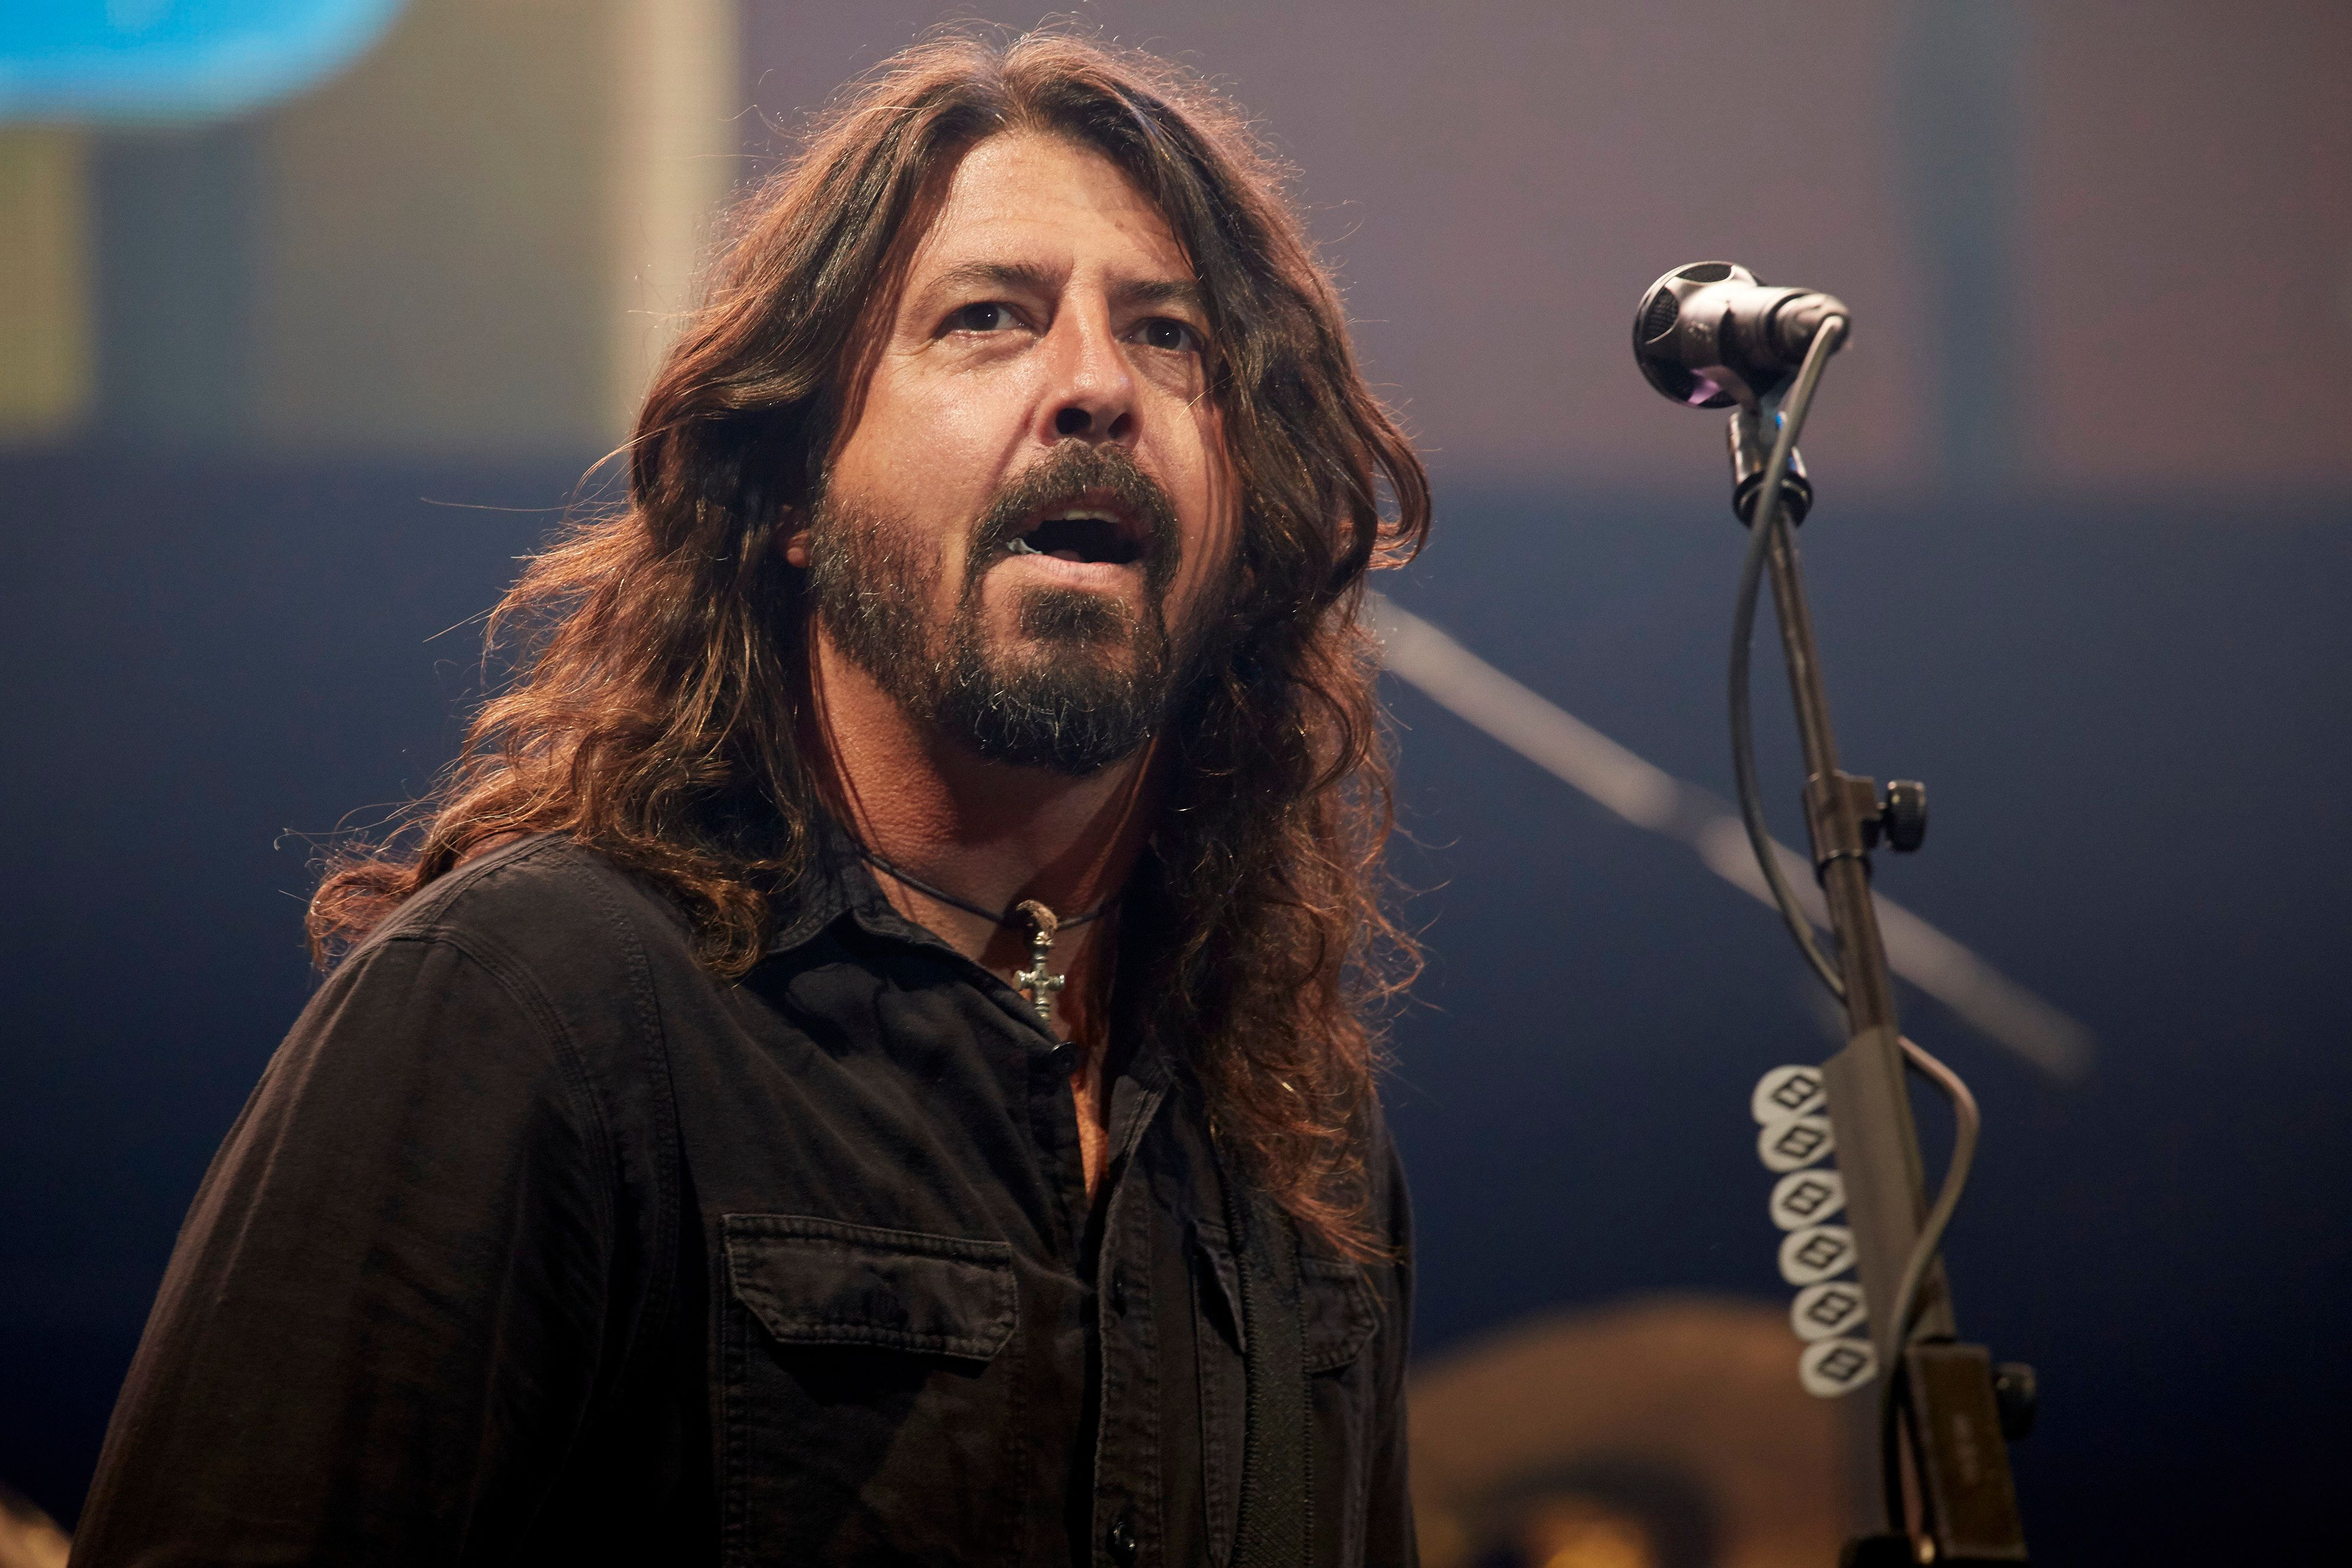 Dave Grohl of the Foo Fighters said he's ashamed of President Trump.